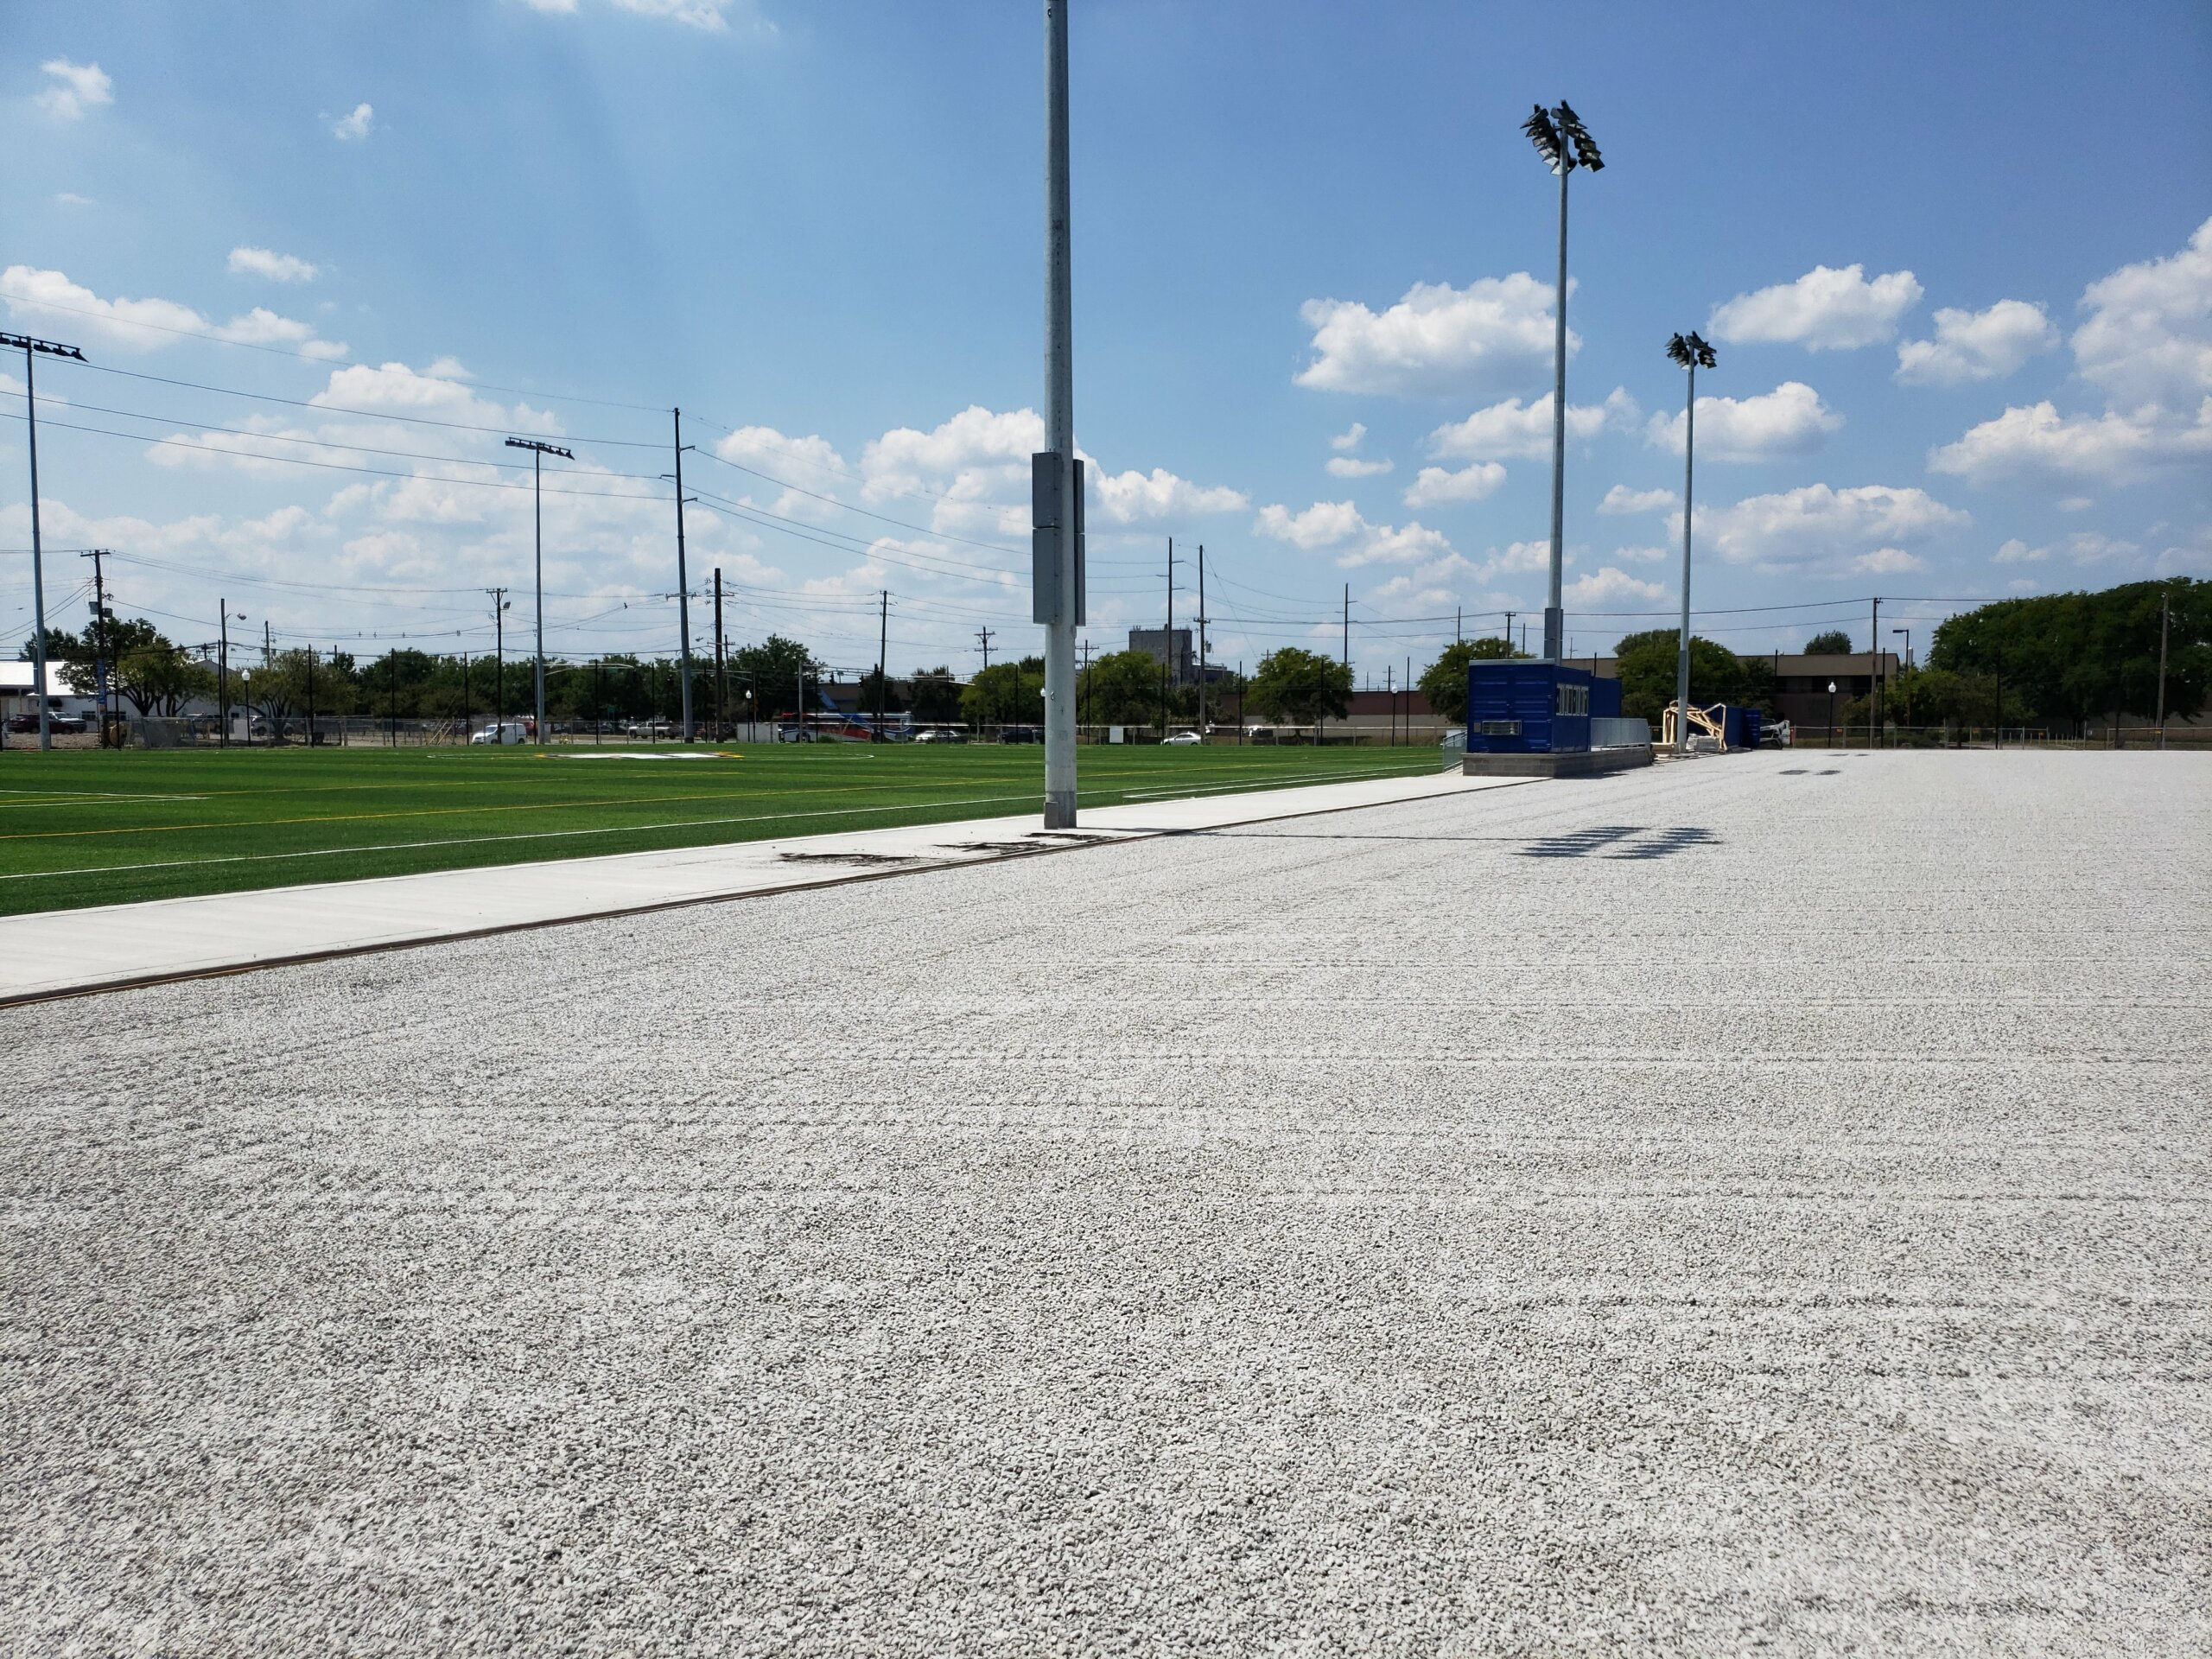 field under construction - laying pad and turf